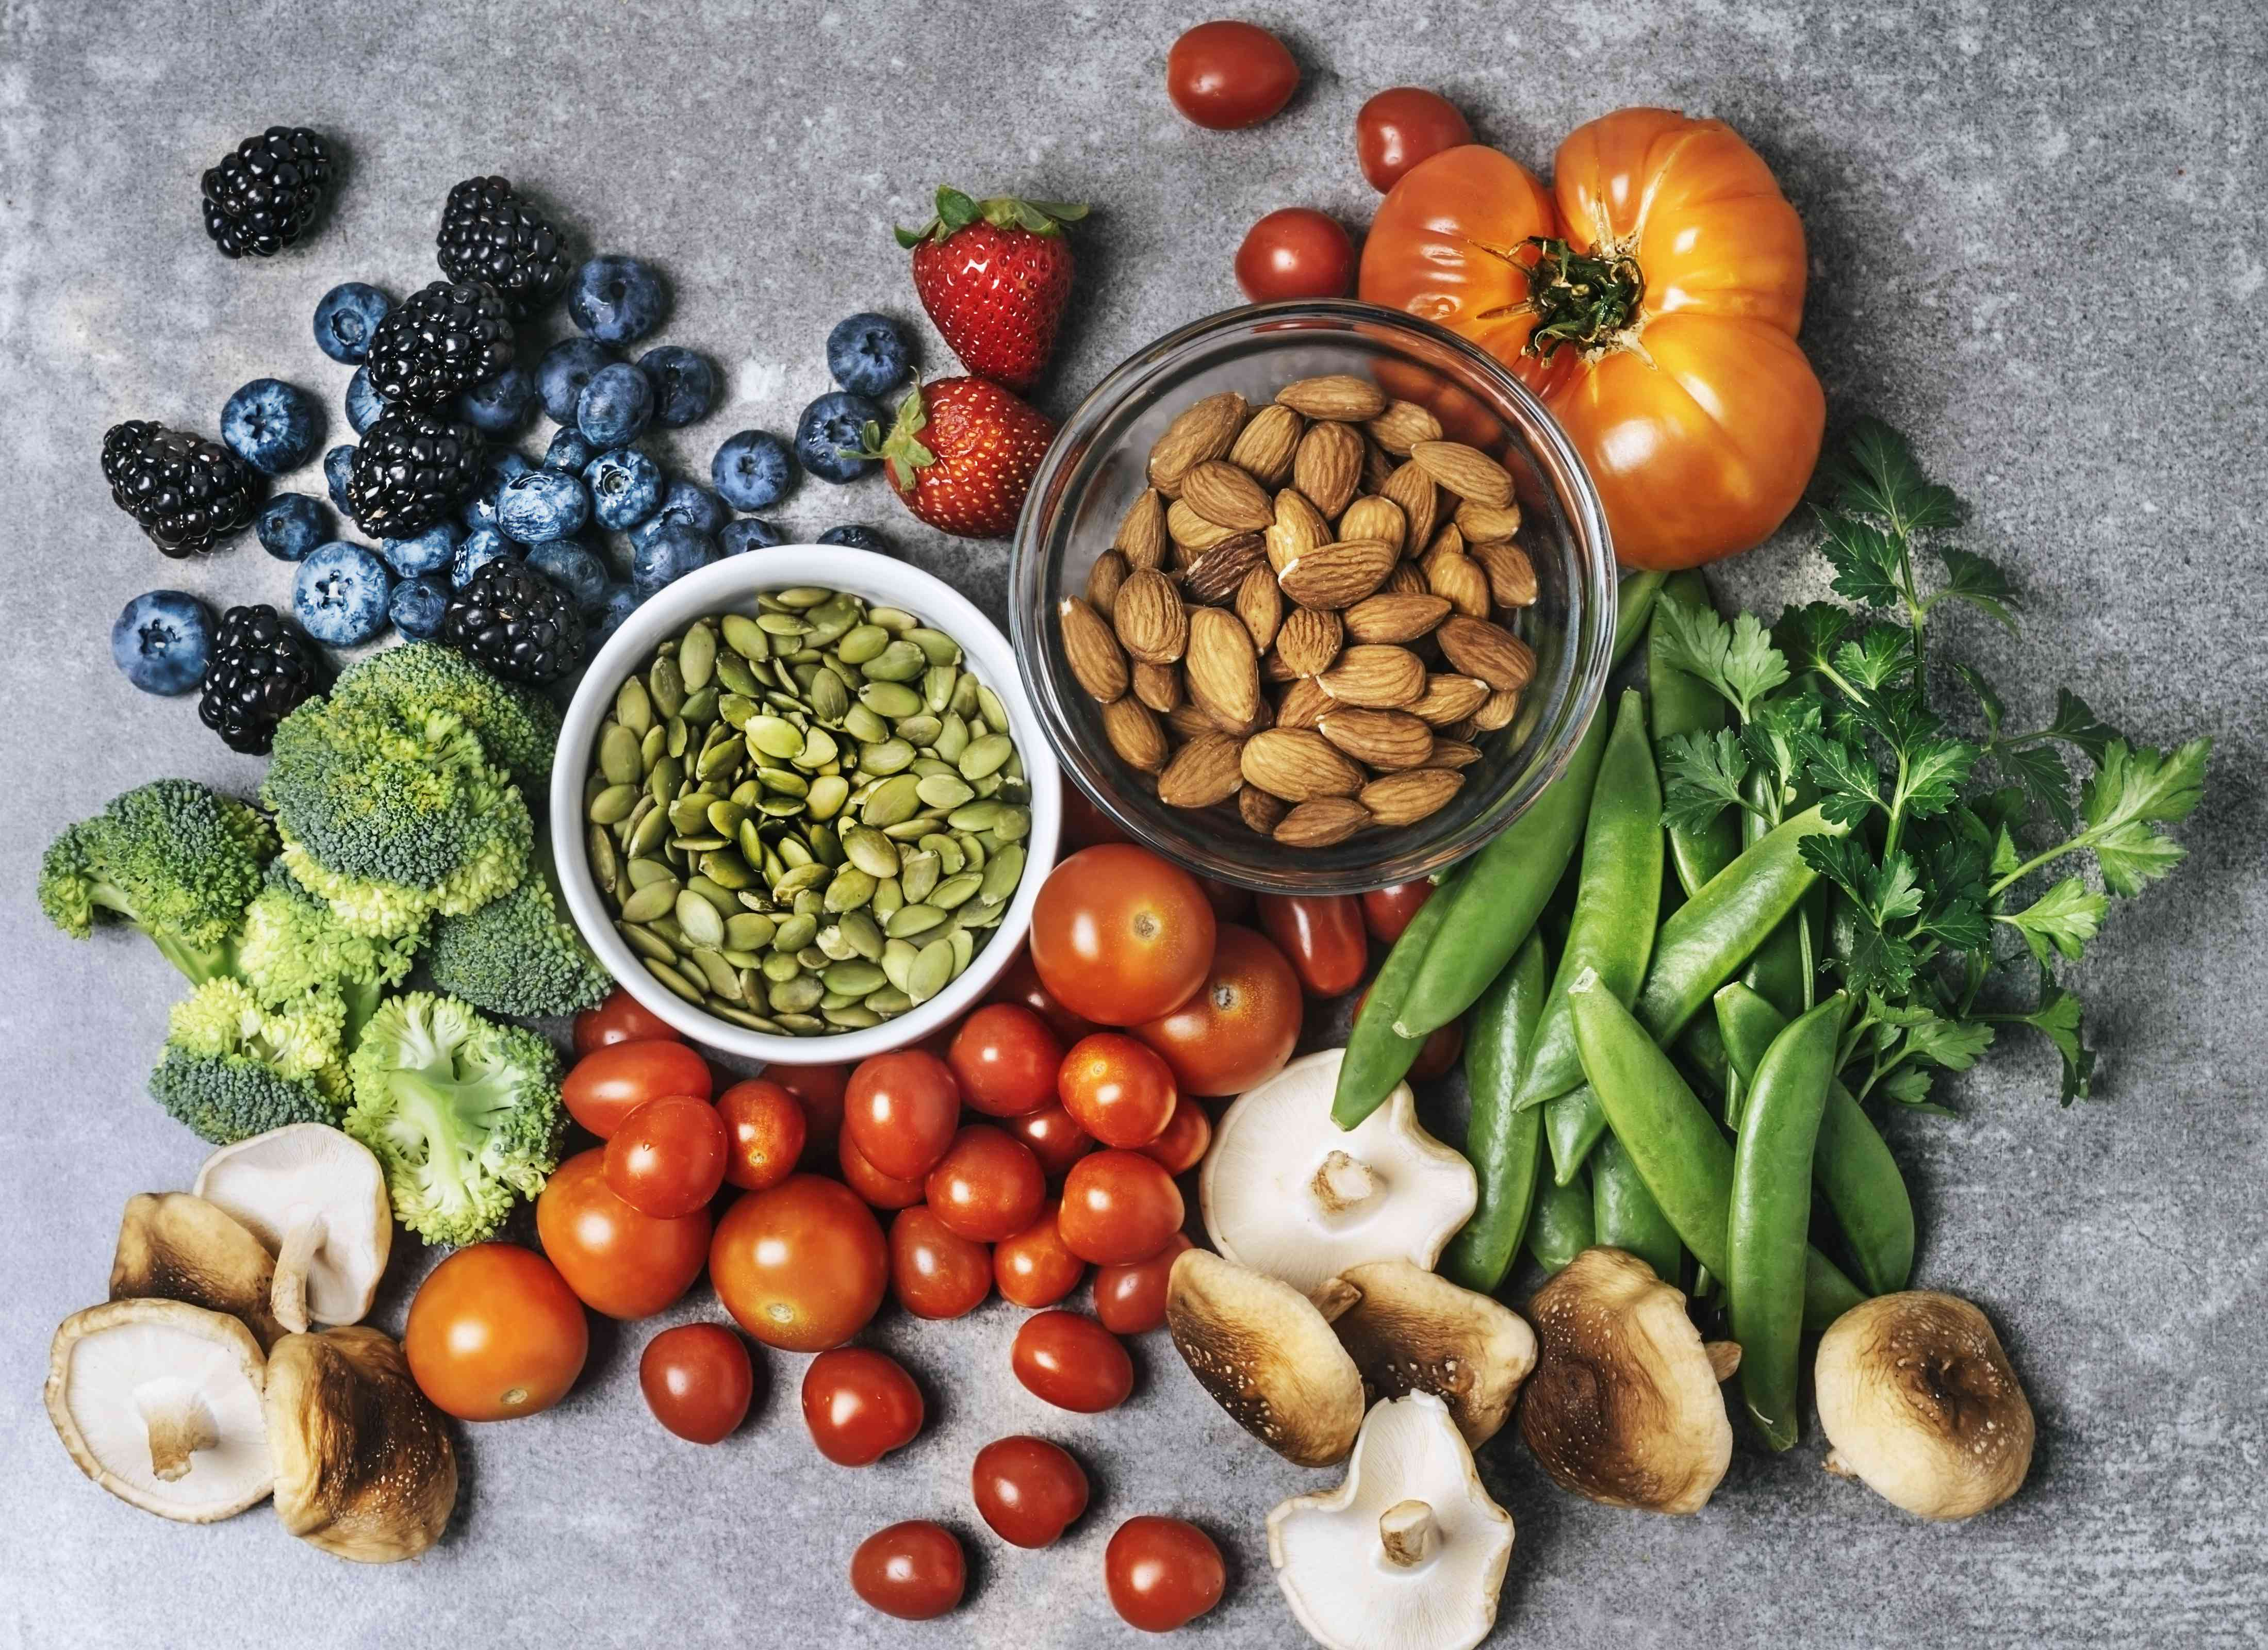 Using the DASH Diet to Help Lower Your Cholesterol